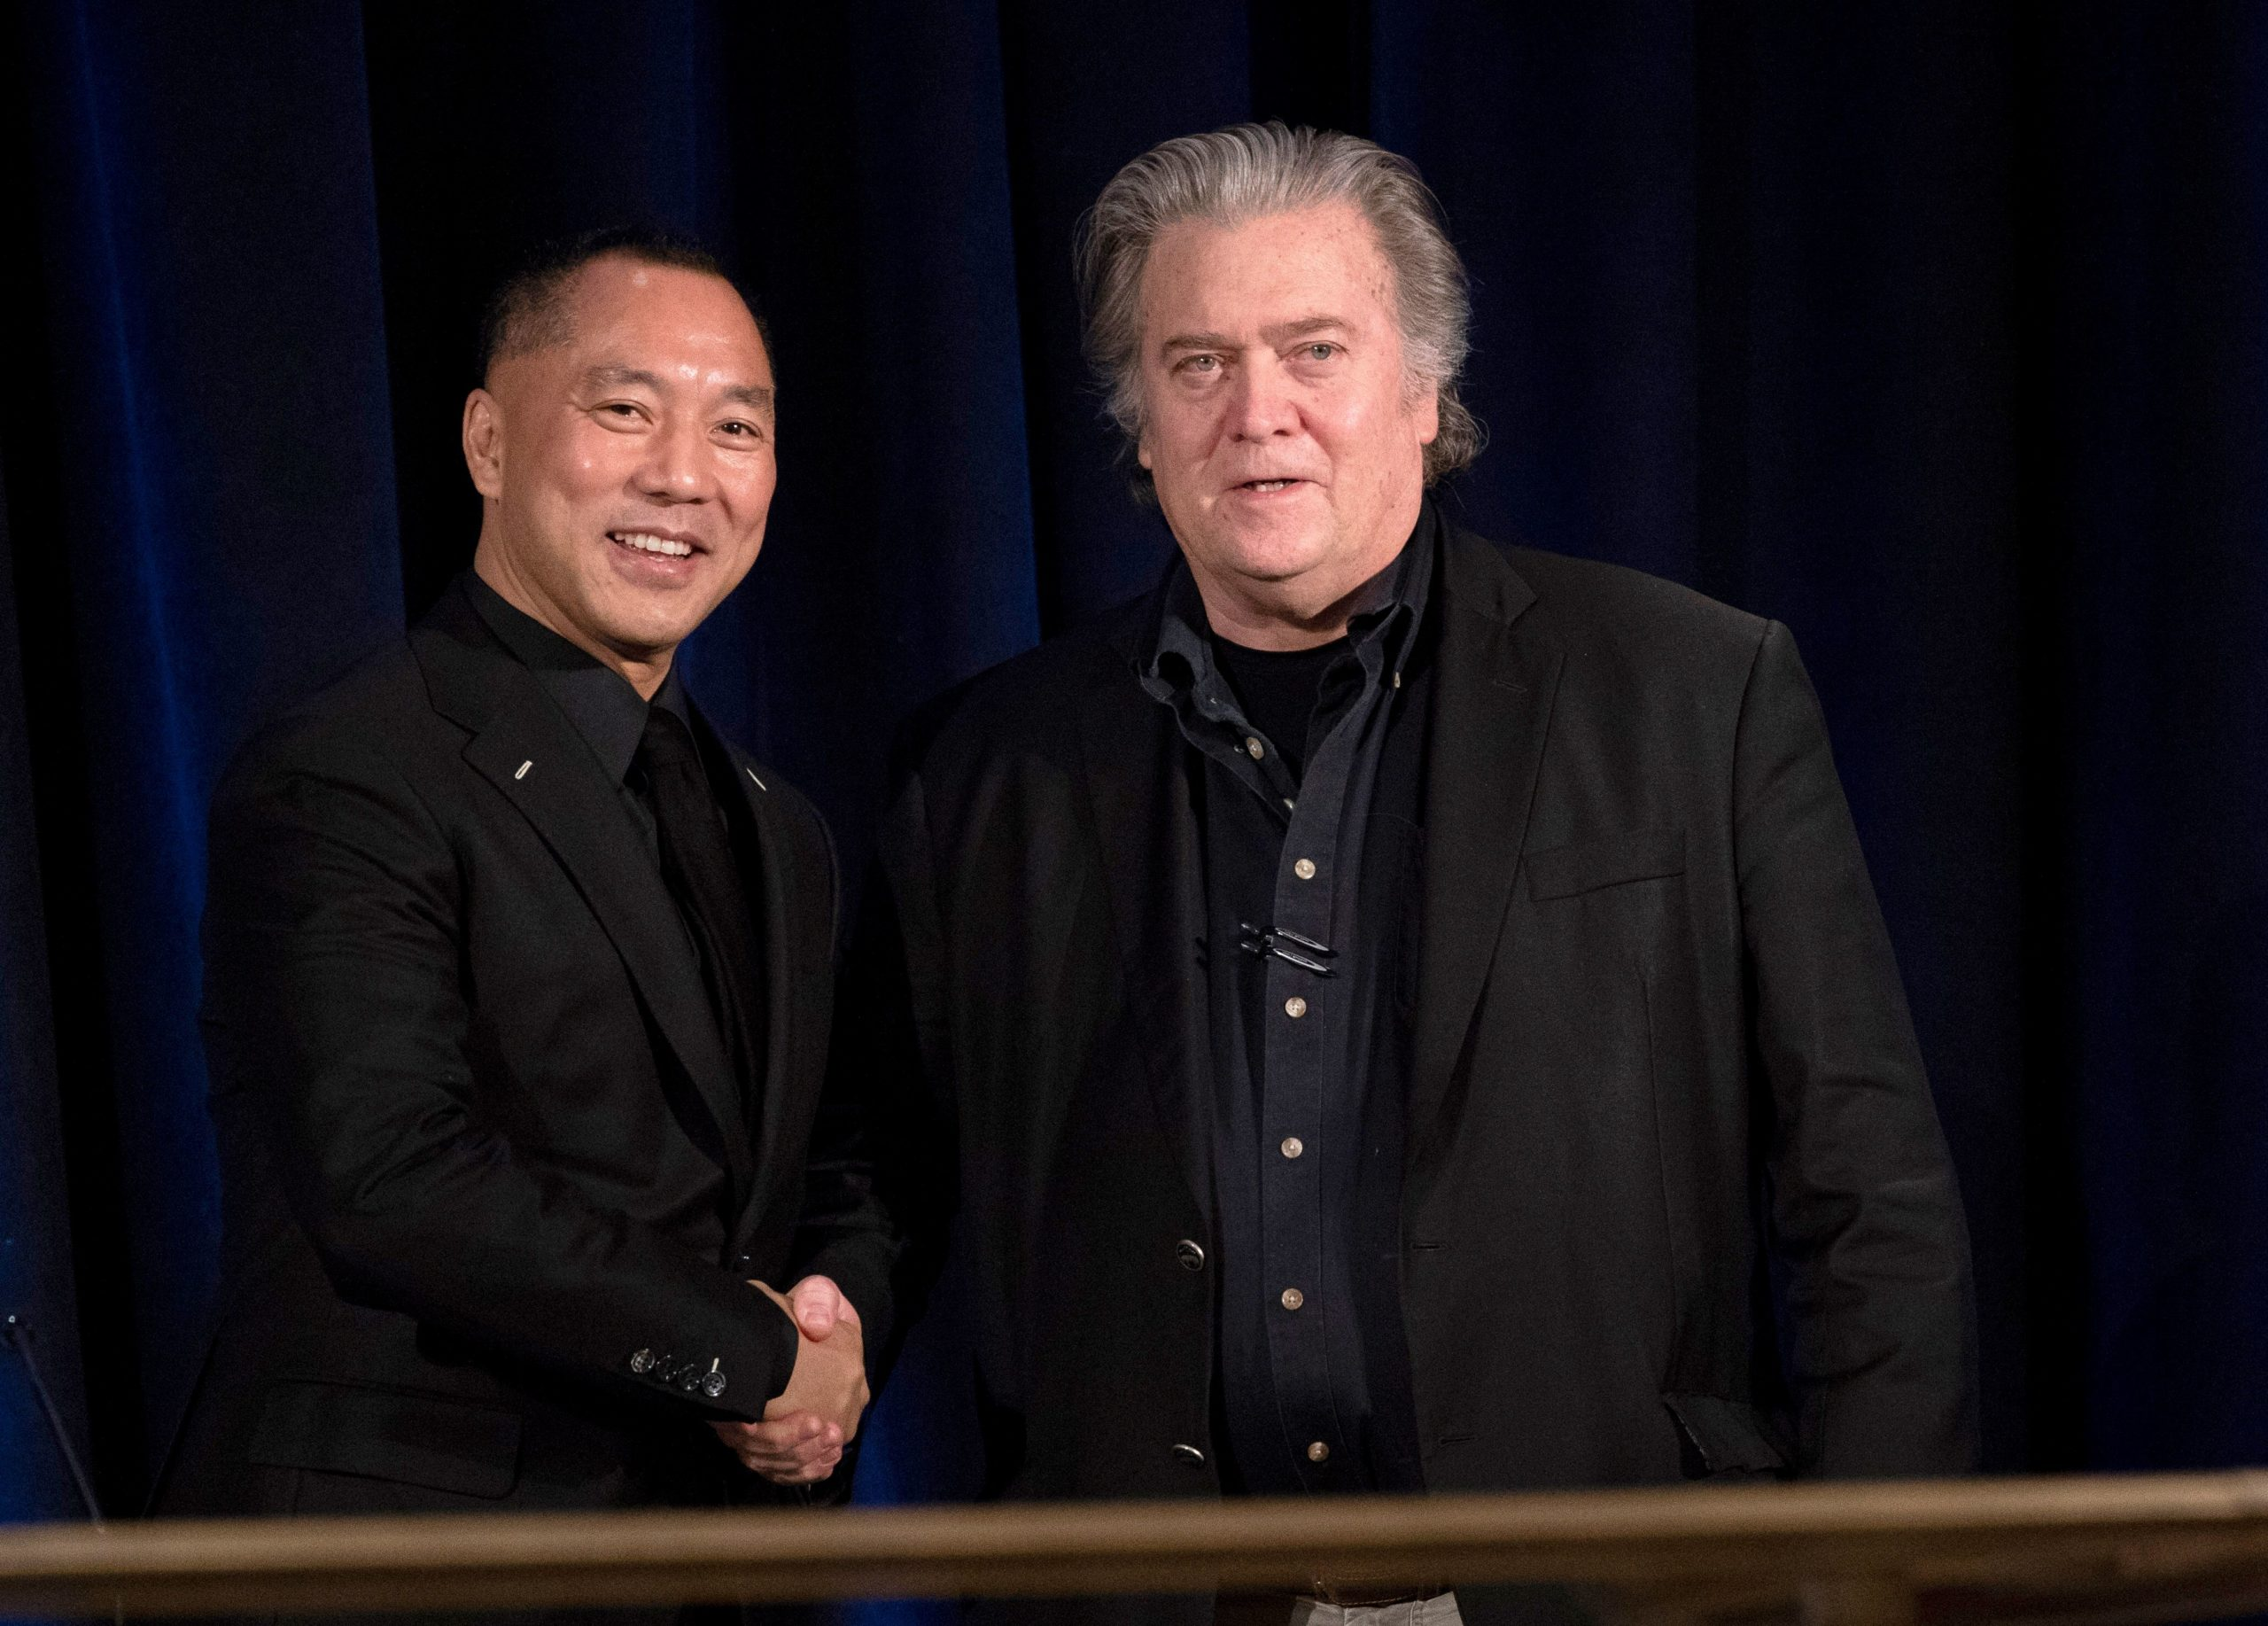 Former White House Chief Strategist Steve Bannon (R) greets fugitive Chinese billionaire Guo Wengui before introducing him at a news conference on November 20, 2018 in New York, on the death of of tycoon Wang Jian in France on July 3, 2018. (Photo by Don EMMERT / AFP) (Photo credit should read DON EMMERT/AFP via Getty Images)